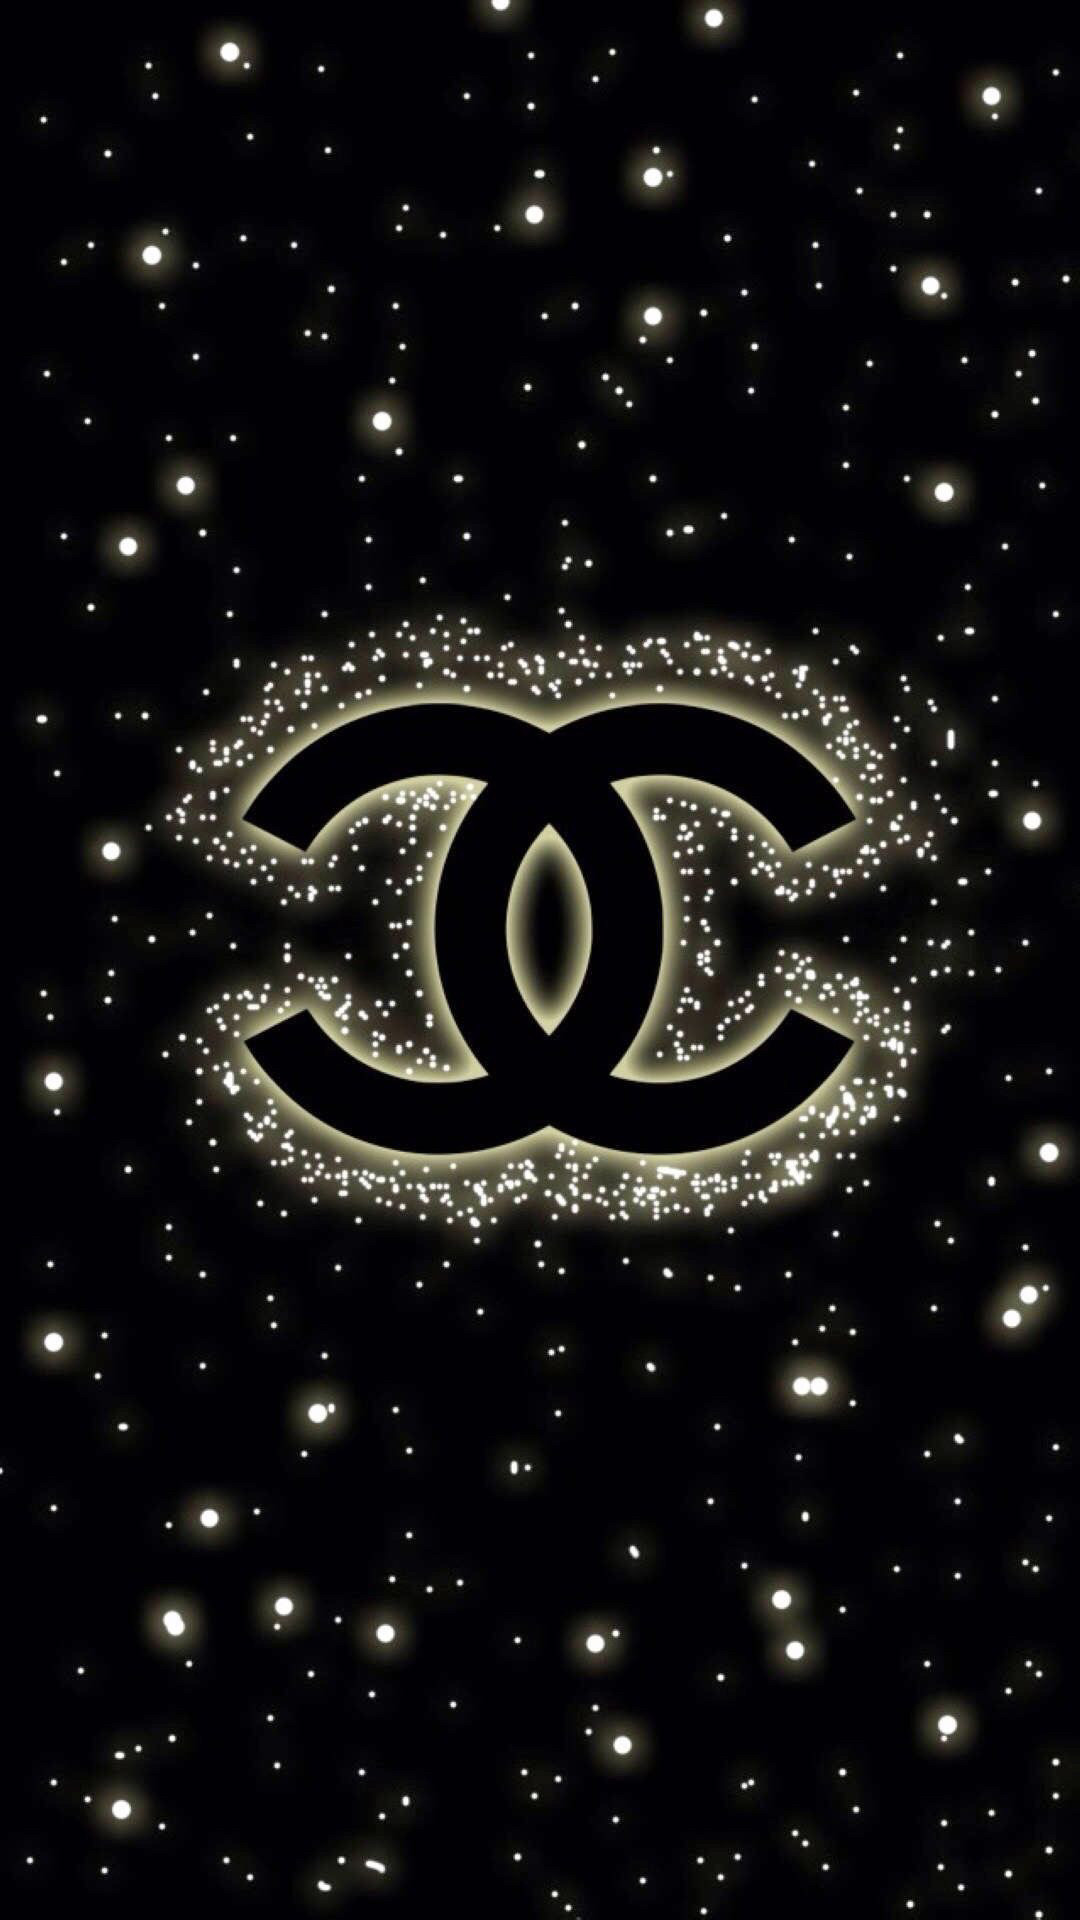 Coco Chanel Iphone Wallpaper Chanel Logo Wallpaper 65 Images